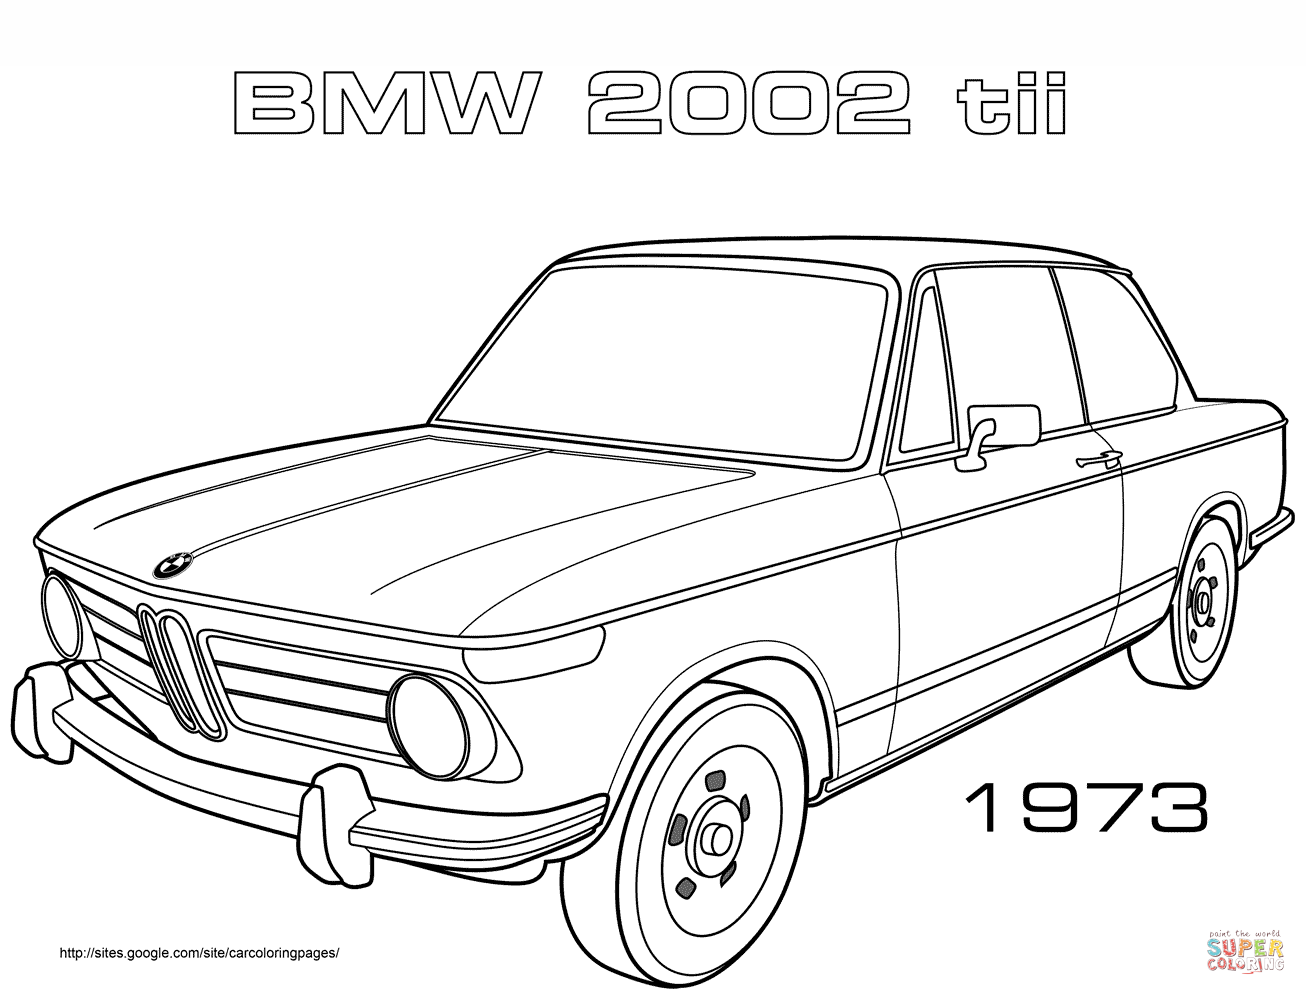 Ausmalbilder Autos Bmw : 1973 Bmw 2002 Tii Coloring Page Png 1306 995 Drawings Sketches